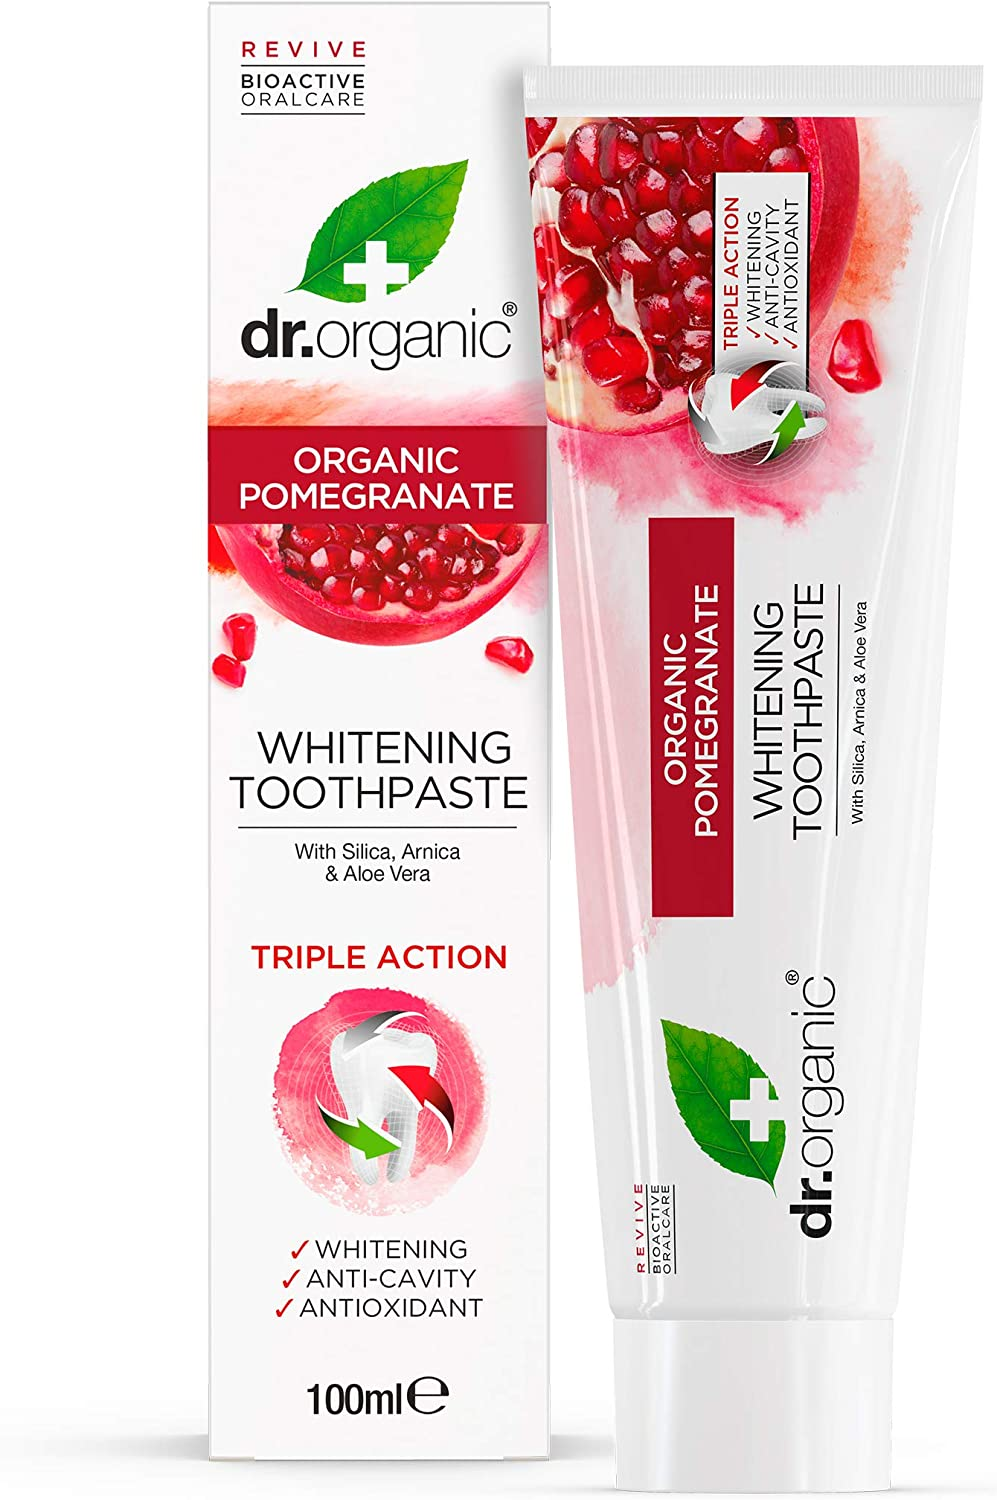 Dr Large-scale sale Organic Pomegrante 100ml quality assurance Toothpaste